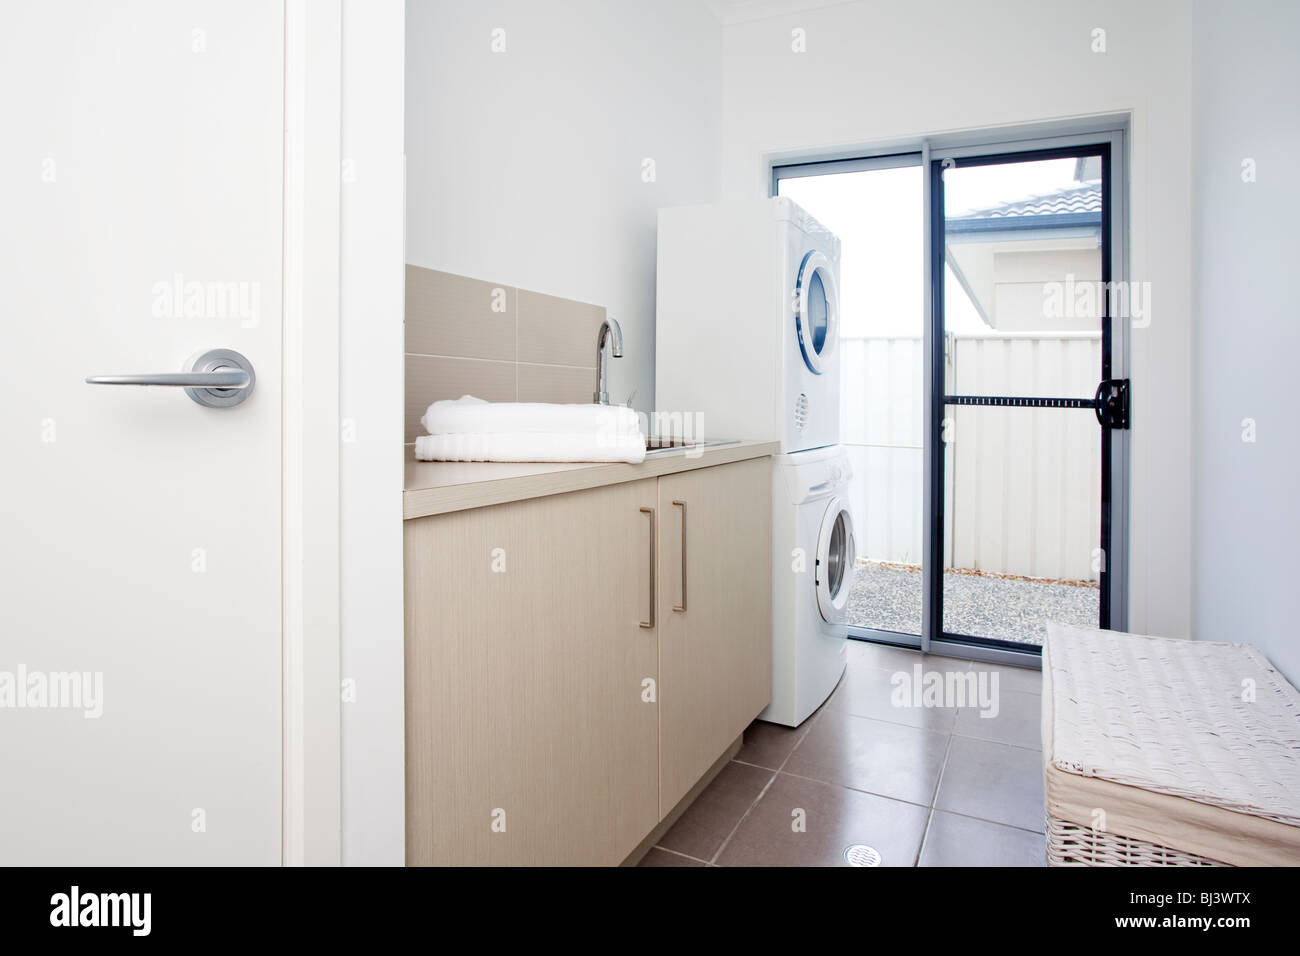 laundry room in modern townhouse - Stock Image